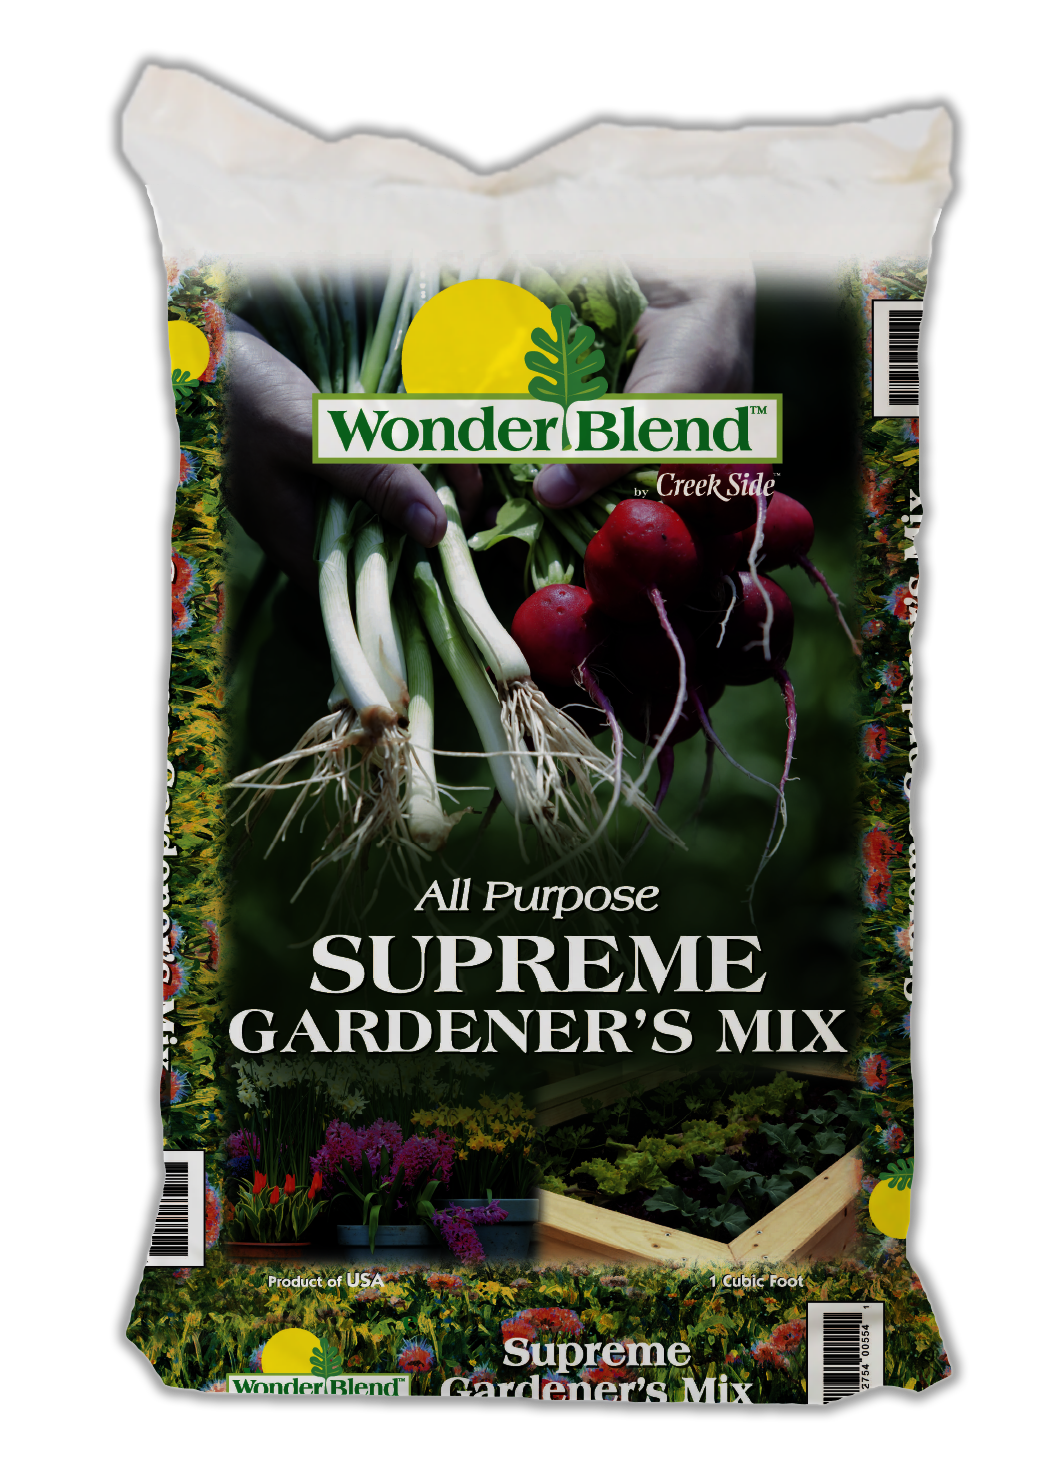 WonderBlend All Purpose Supreme Gardener's Mix